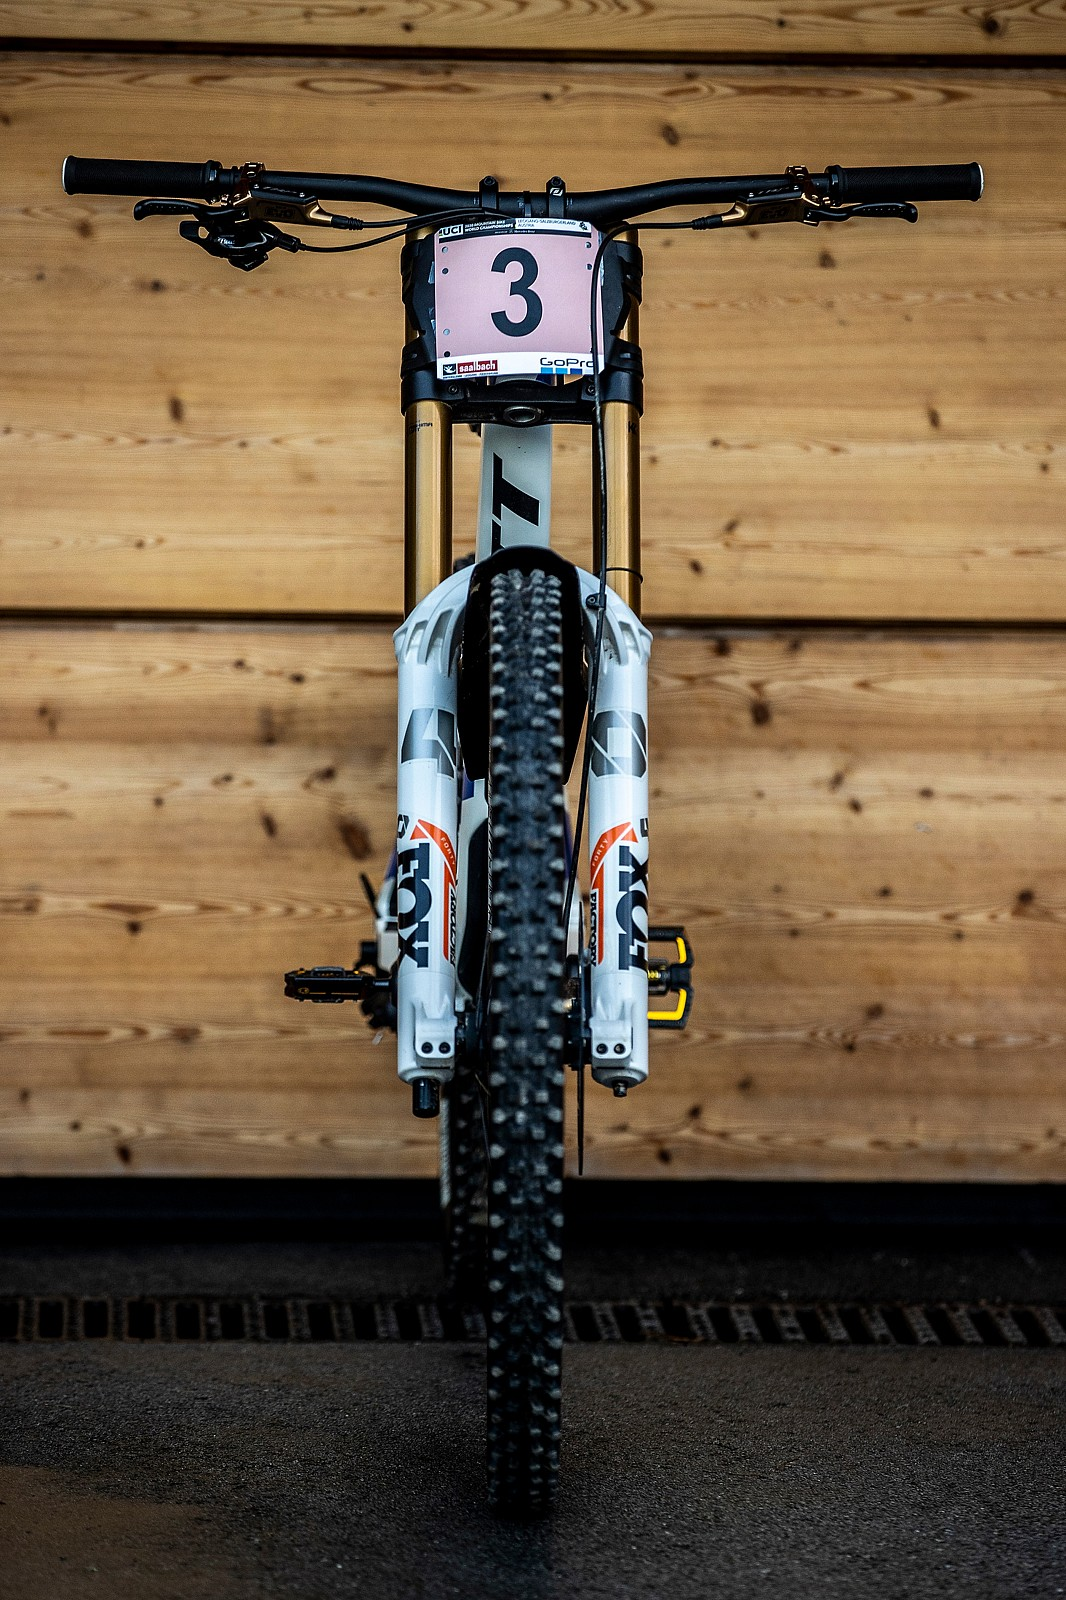 Turn That 3 into a 1 - WORLD CHAMPS BIKE - Marine Cabirou's Scott Gambler - Mountain Biking Pictures - Vital MTB